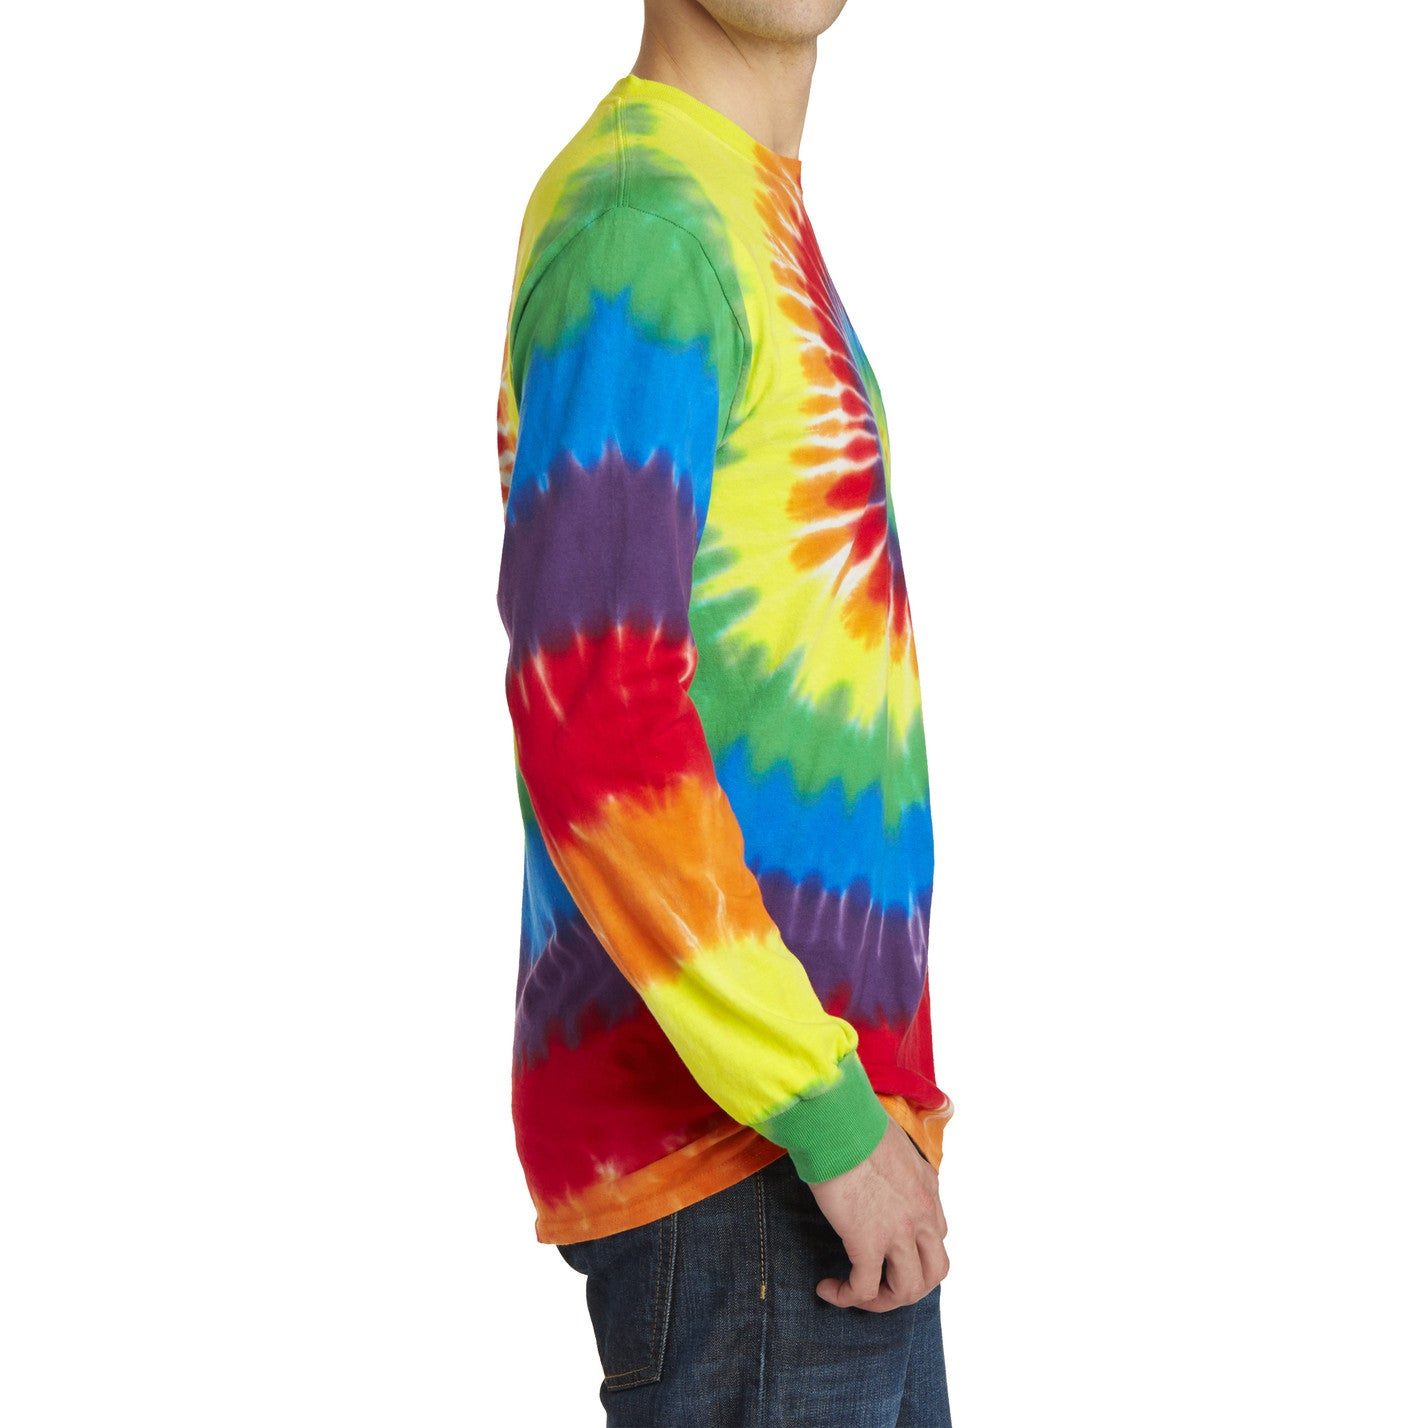 Men's Tie-Dye Long Sleeve Tee - Rainbow - Side